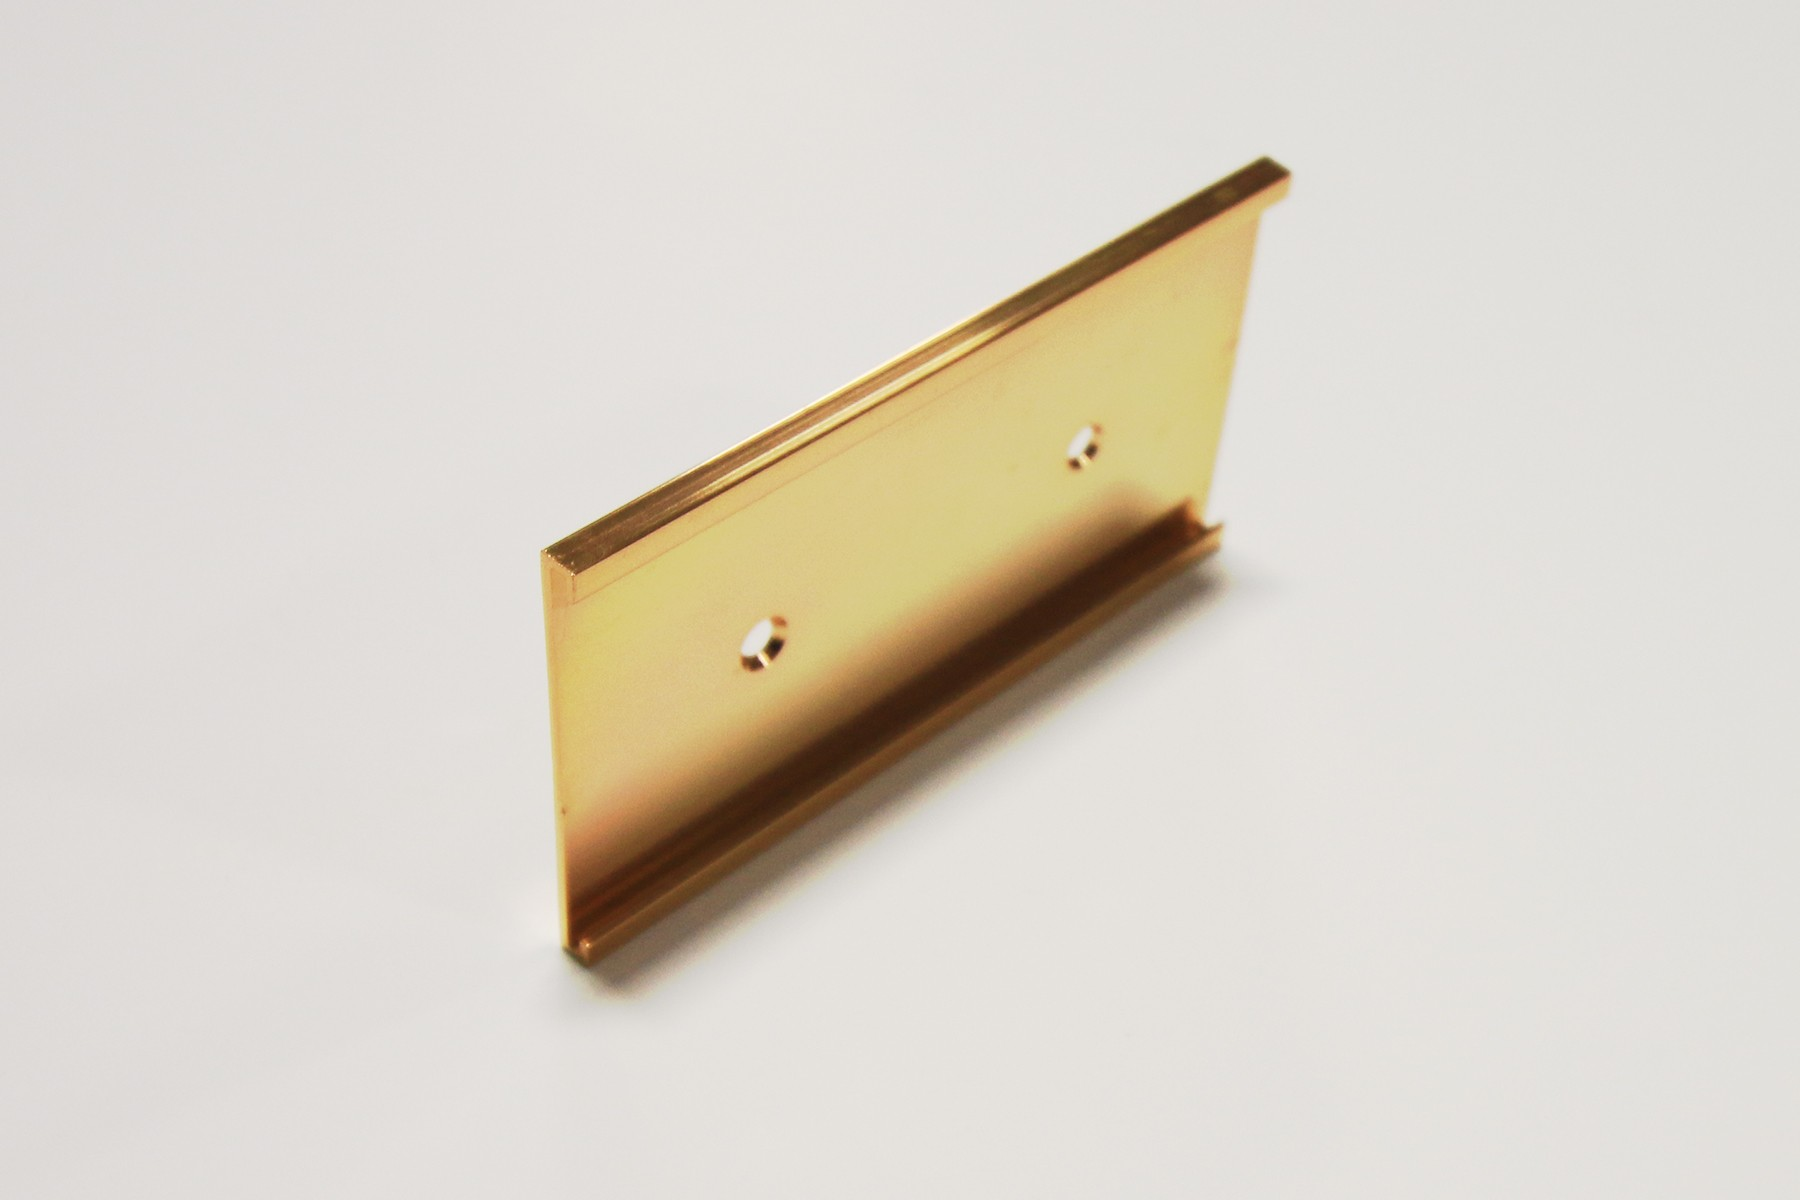 2 x 8 Wall Holder, Gold -300-